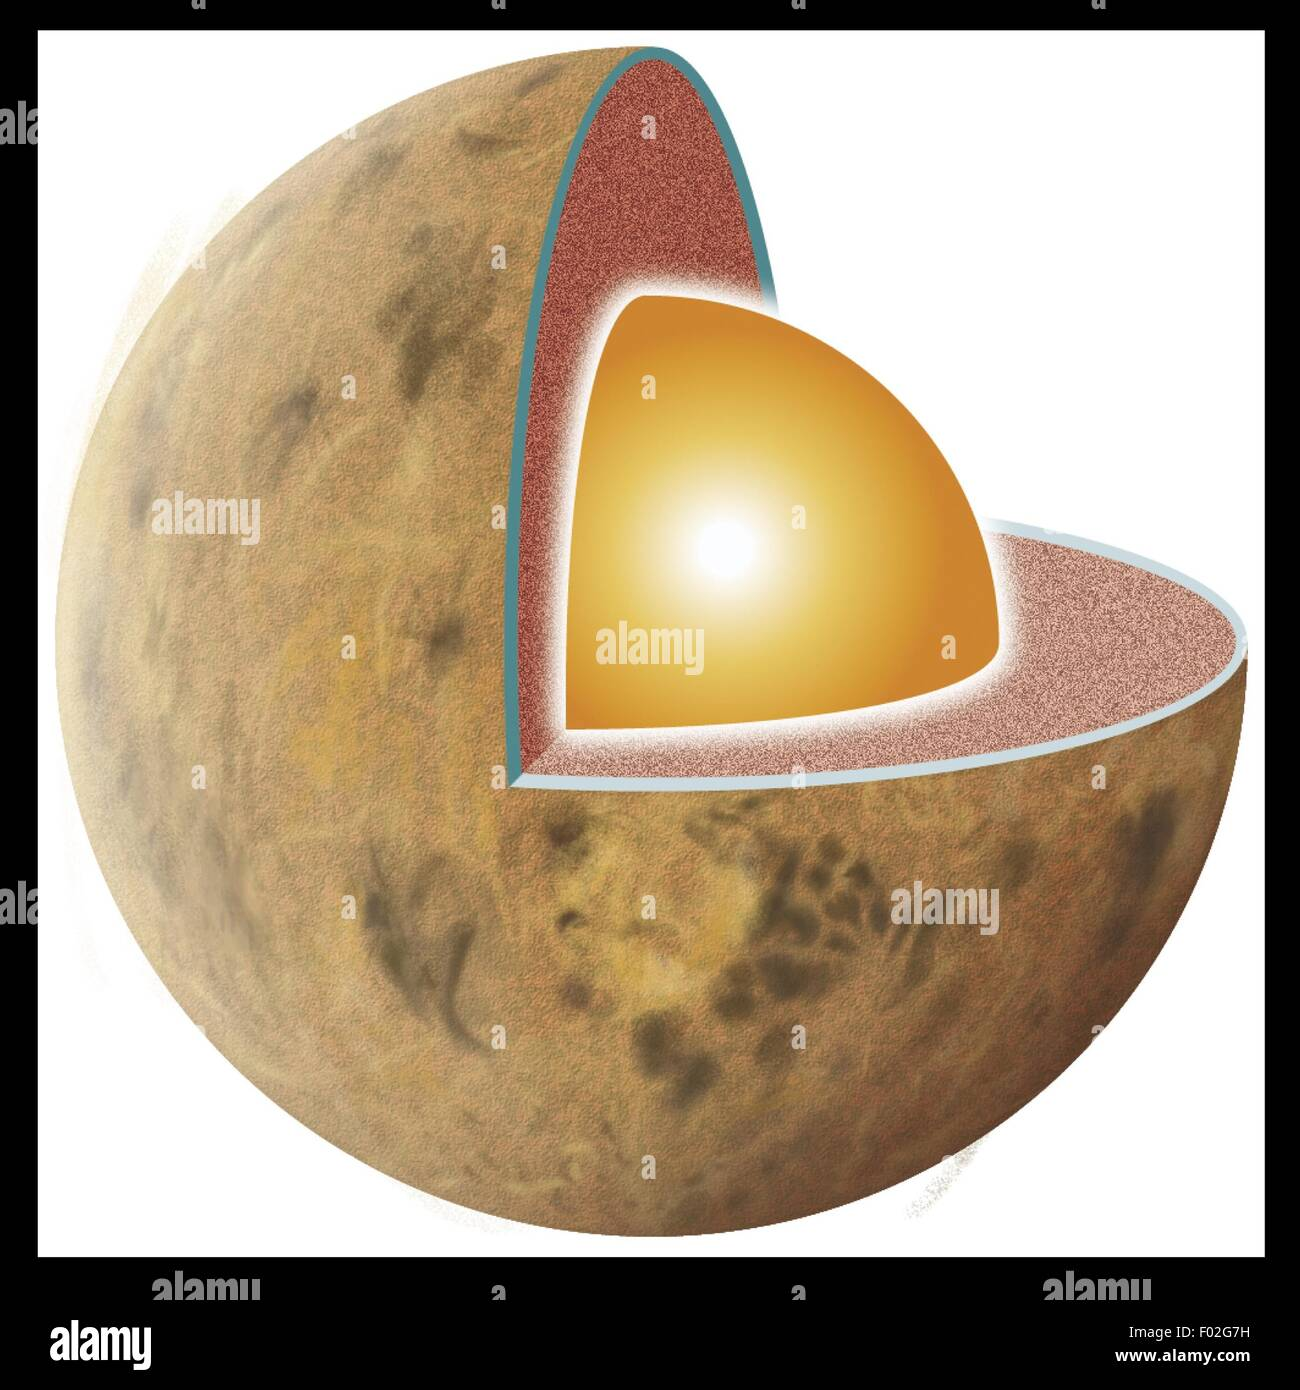 hight resolution of interior venus structure crust mantle core